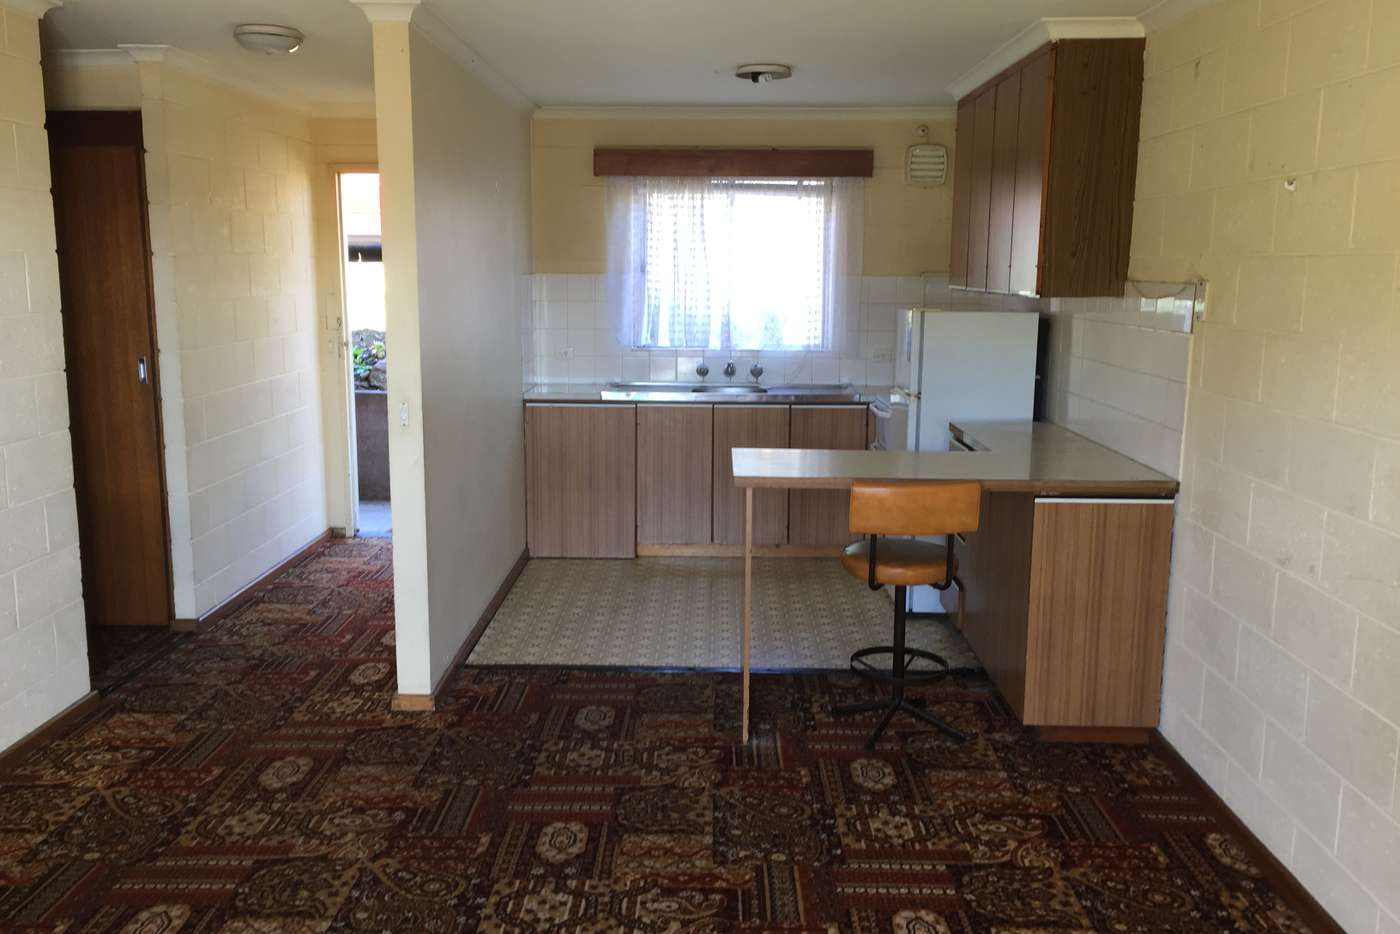 Main view of Homely house listing, 2/49-51 Second Avenue, West Moonah TAS 7009